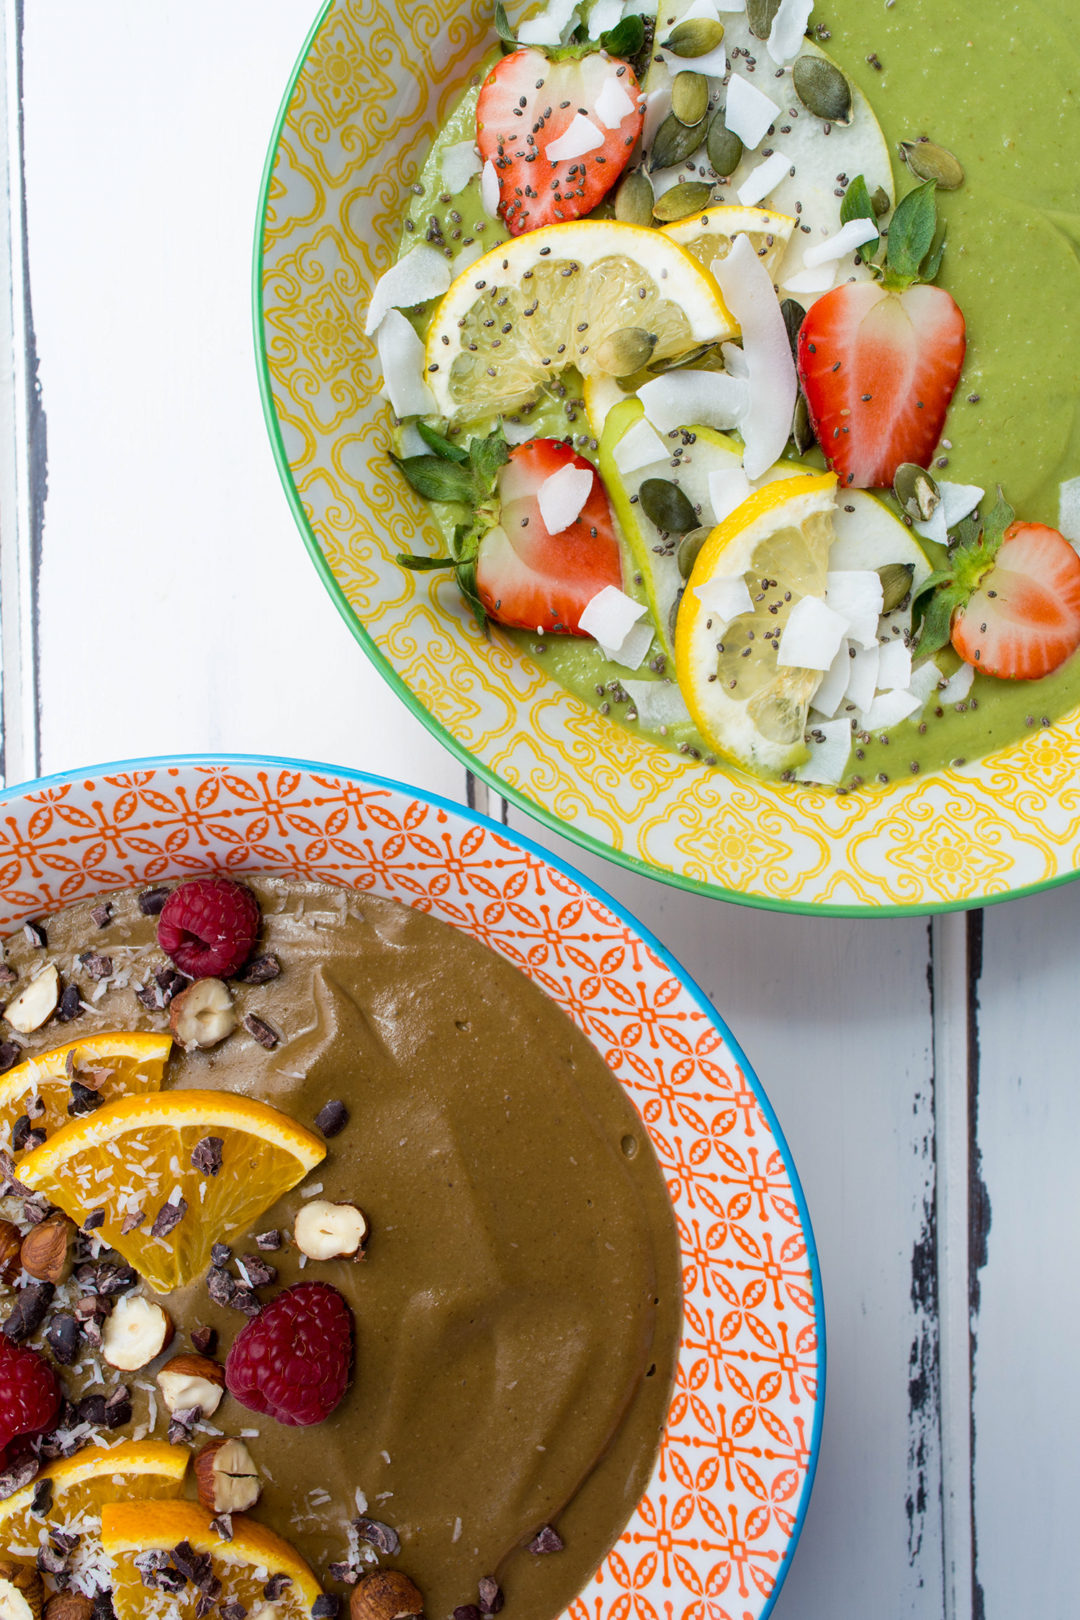 Two Smoothie Bowls: Lemon Pear Chocolate Hazelnut